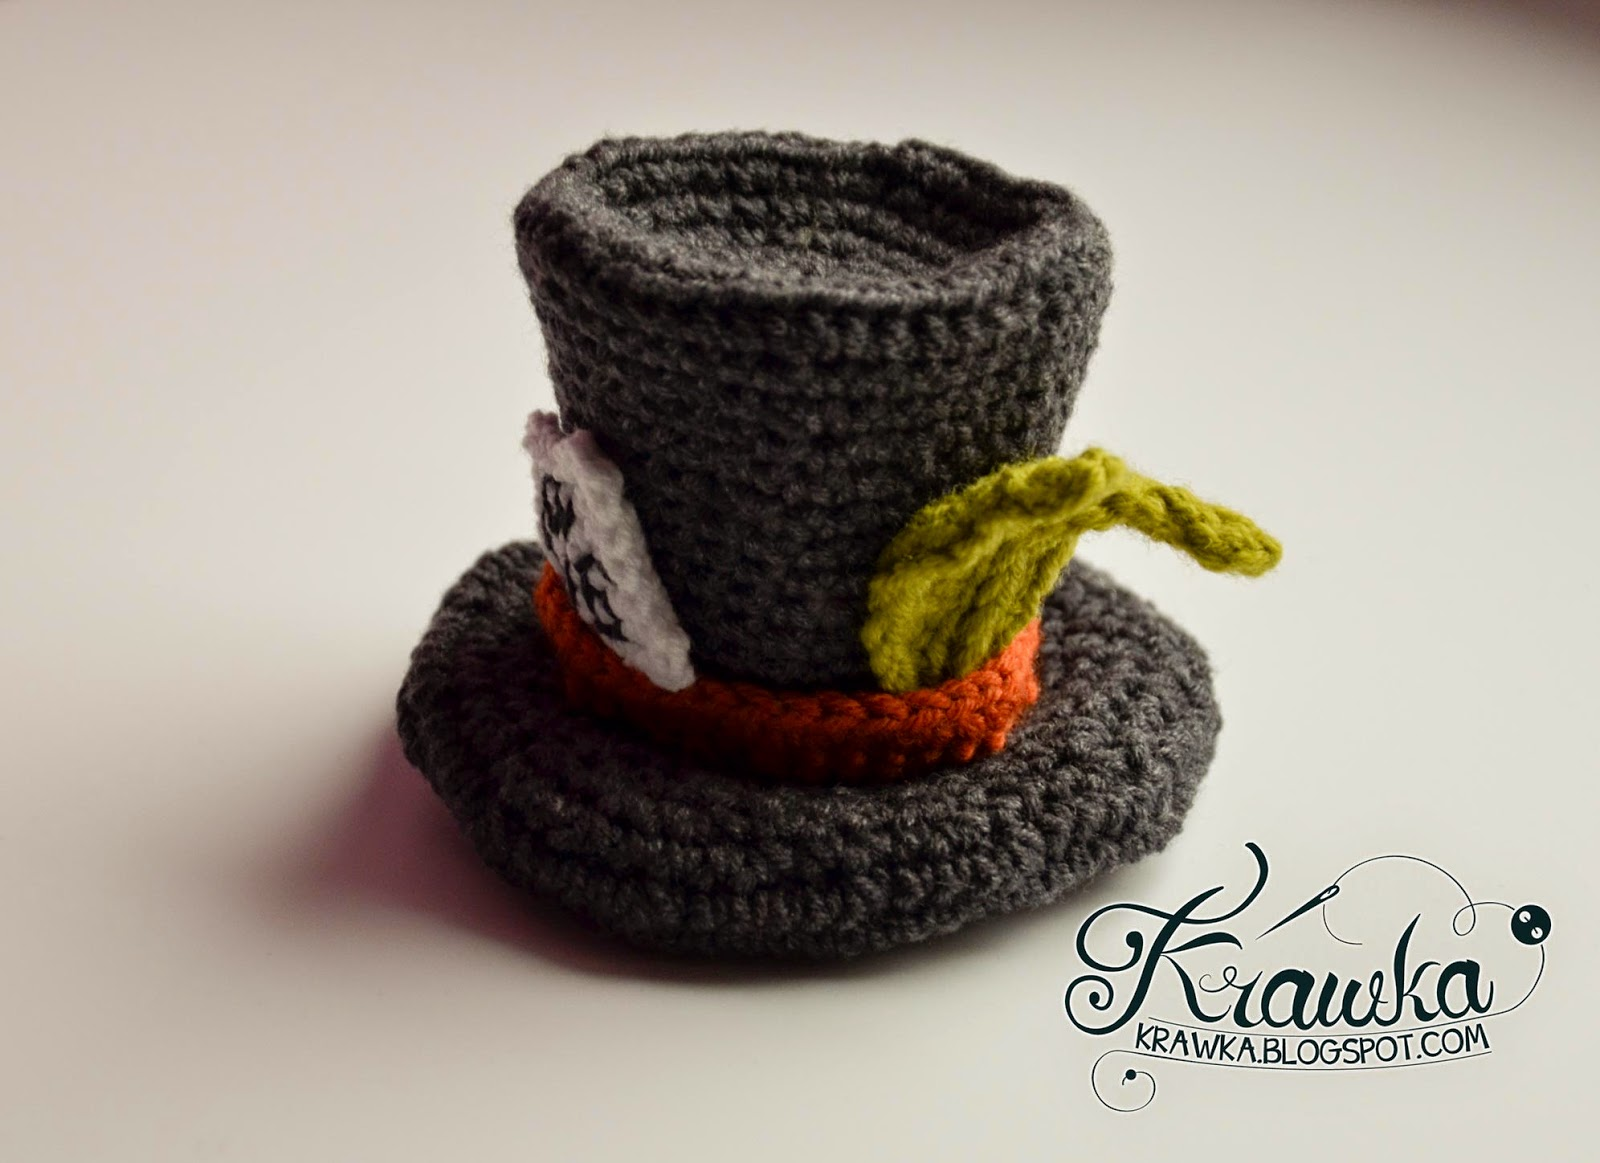 Krawka: Crazy cute crochet pattern for little Mad Hatter's hat - hair accesory